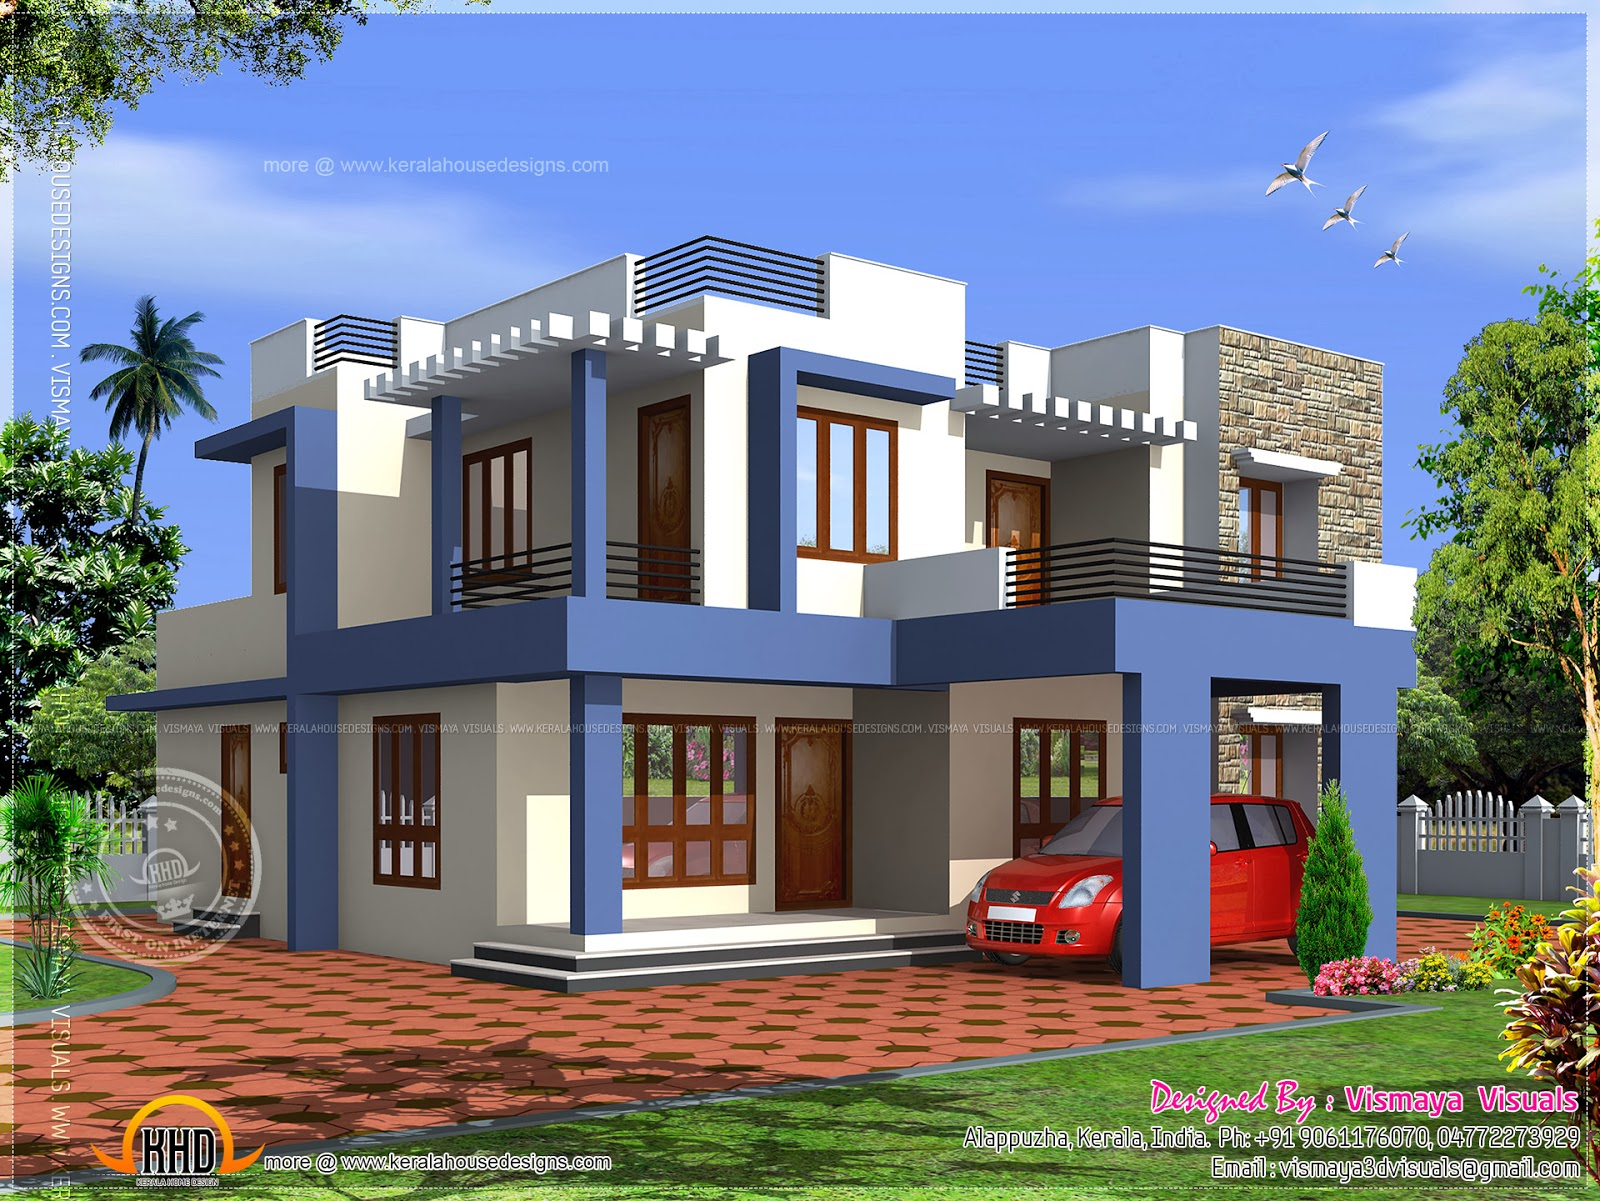 Box type 4 bedroom villa kerala home design and floor plans for Different interior designs of houses